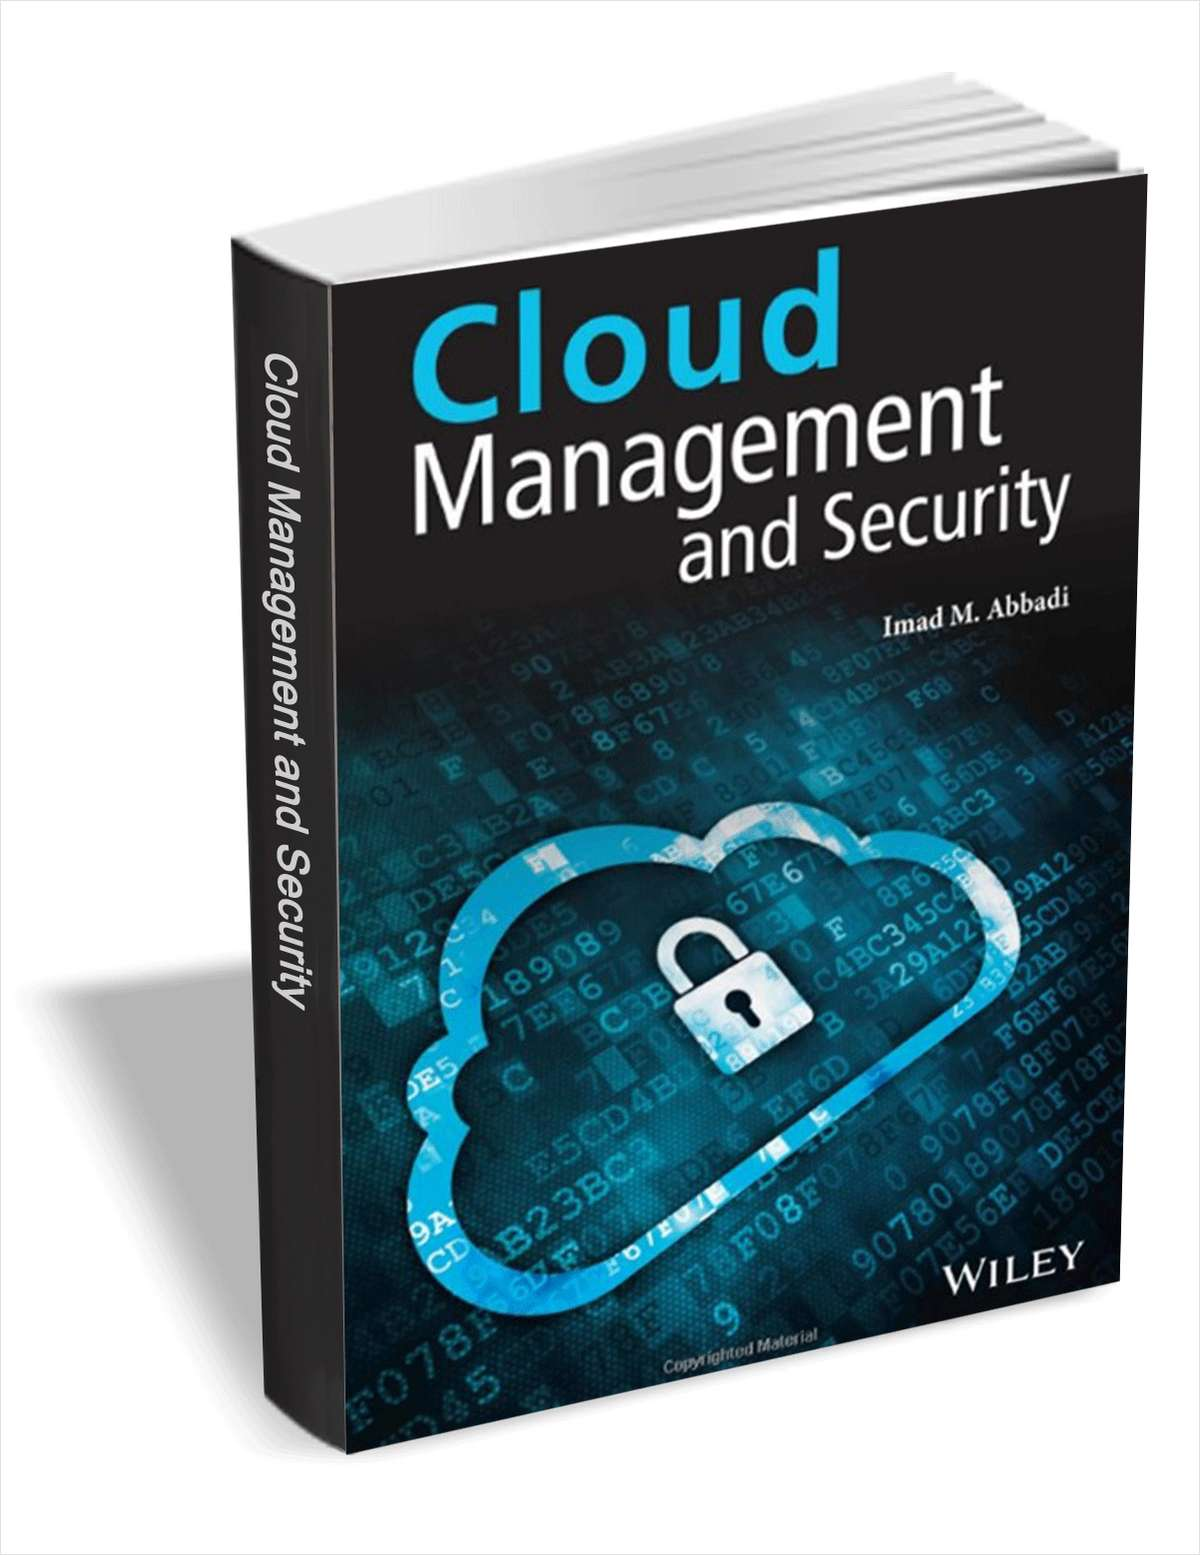 Cloud Management and Security ($109 Value) FREE For a Limited Time